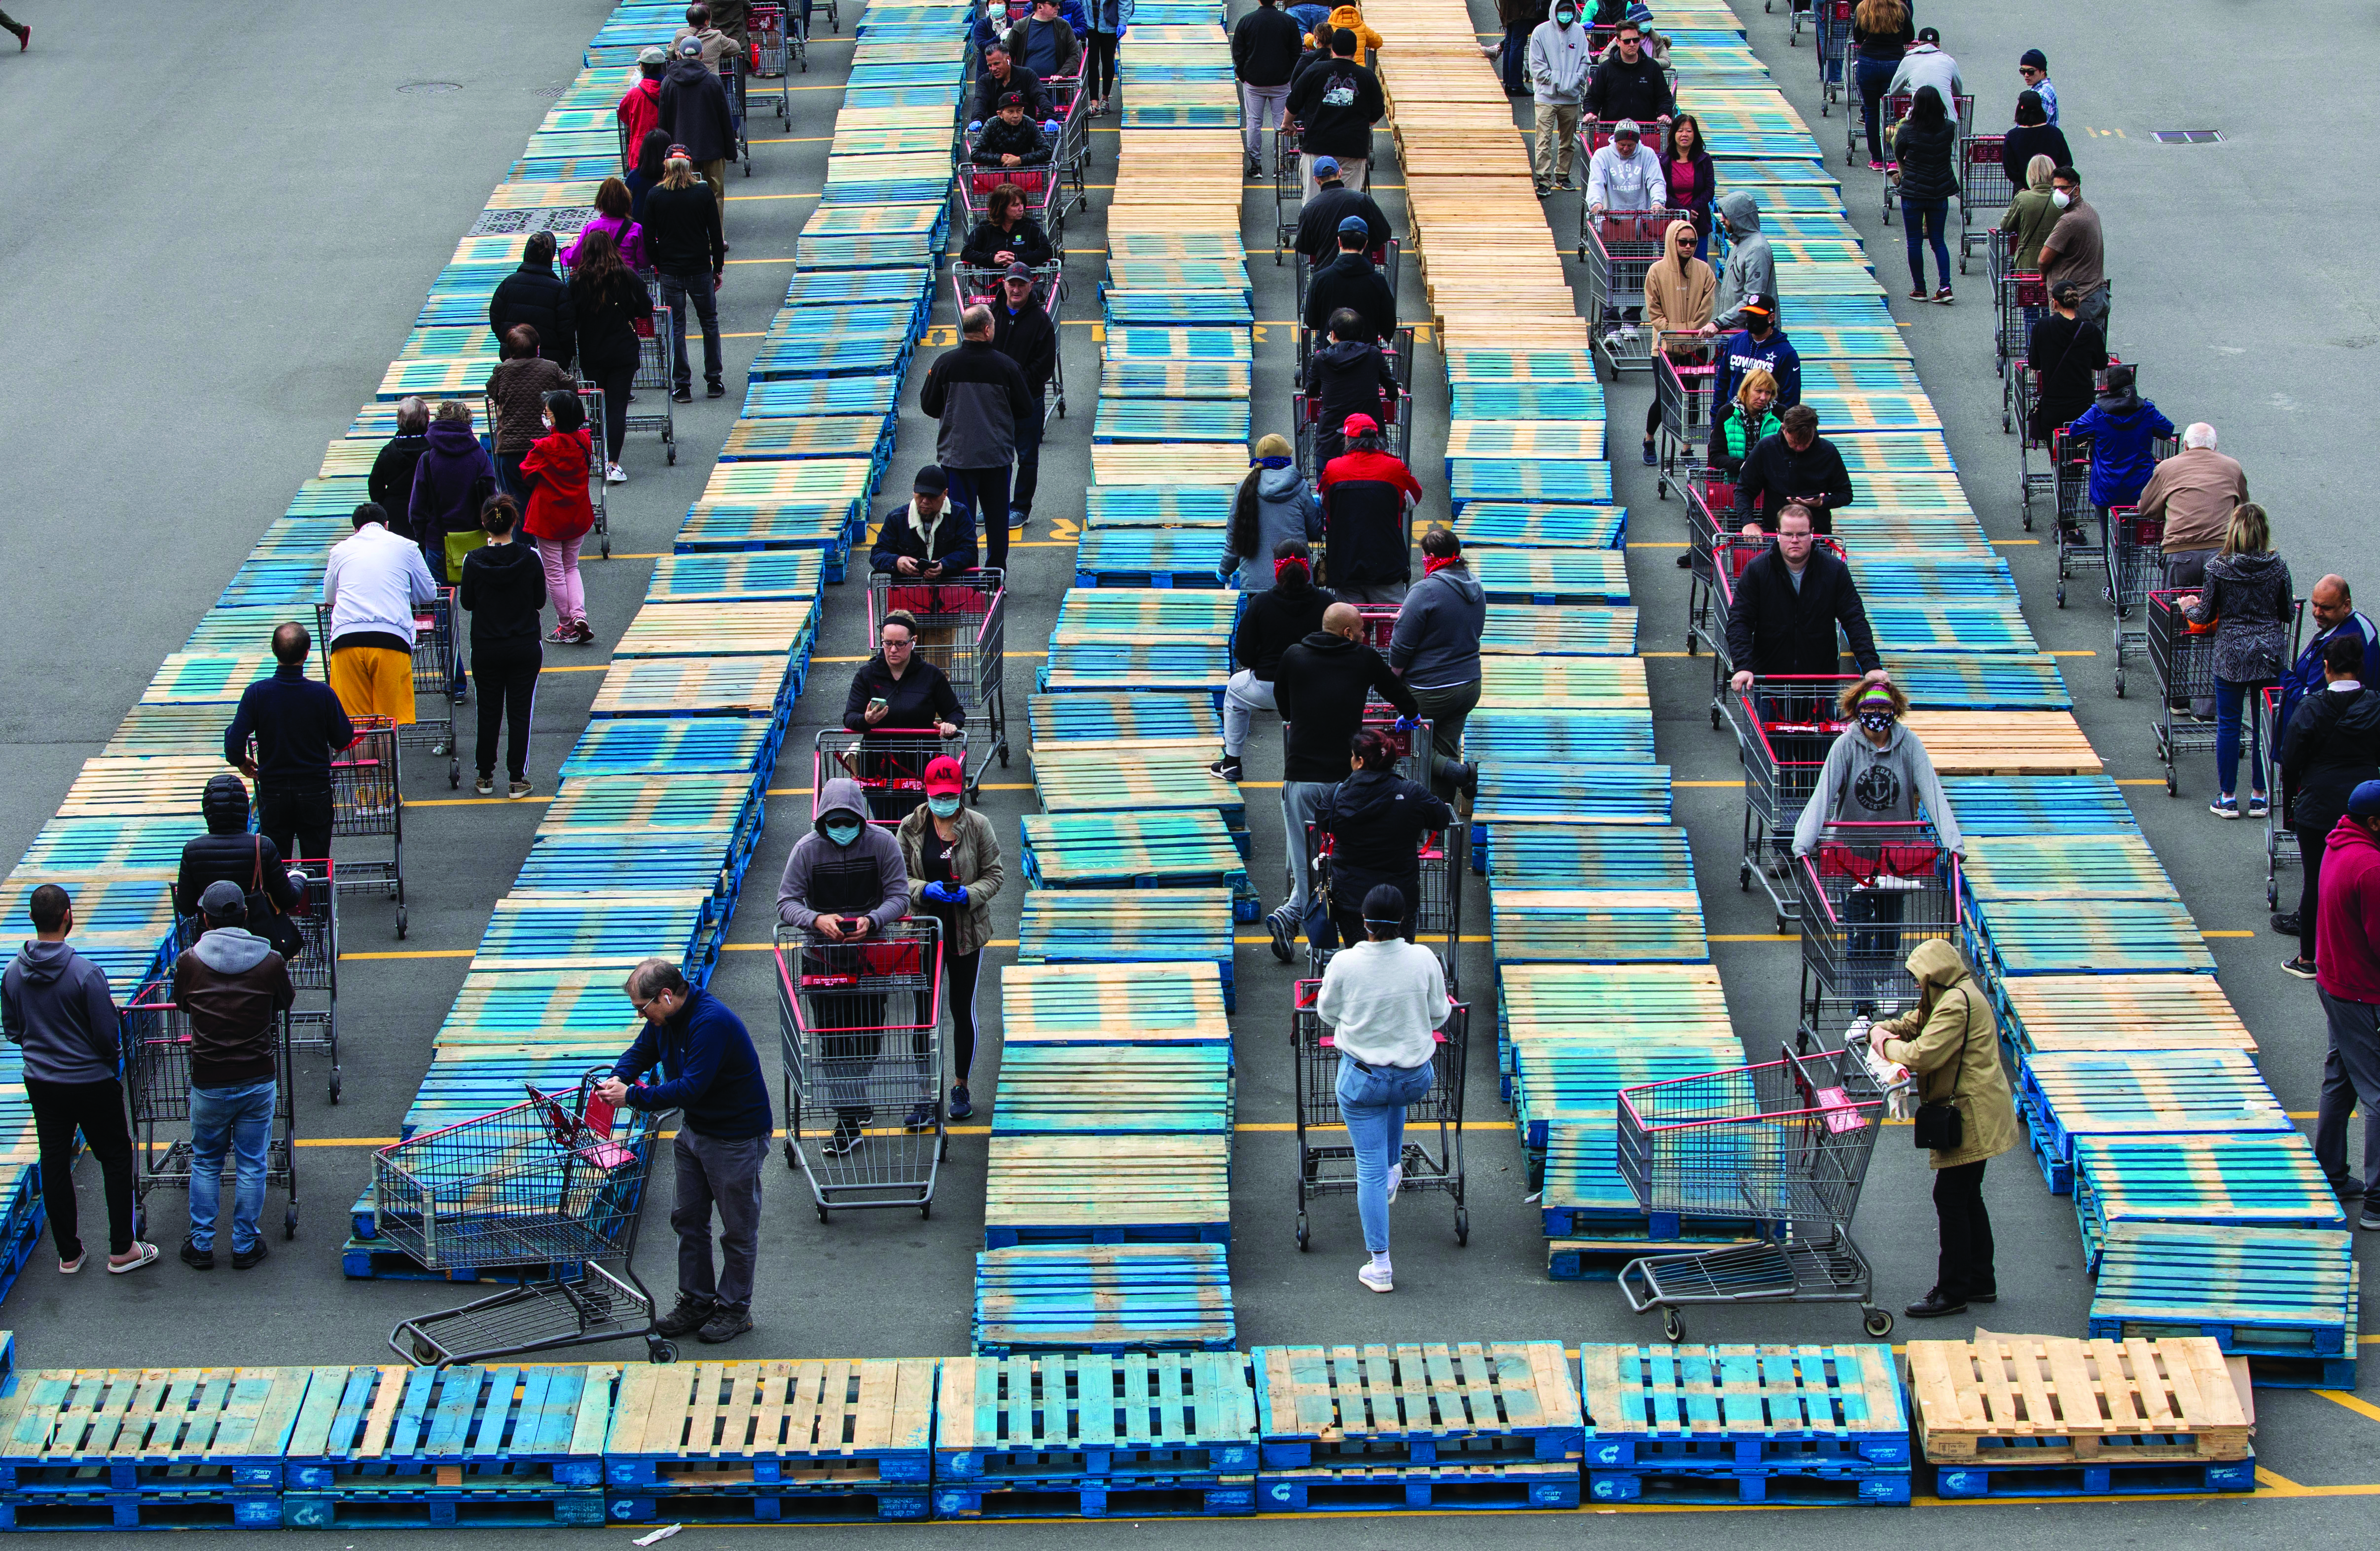 People with shopping carts wait in lines separated by pallets